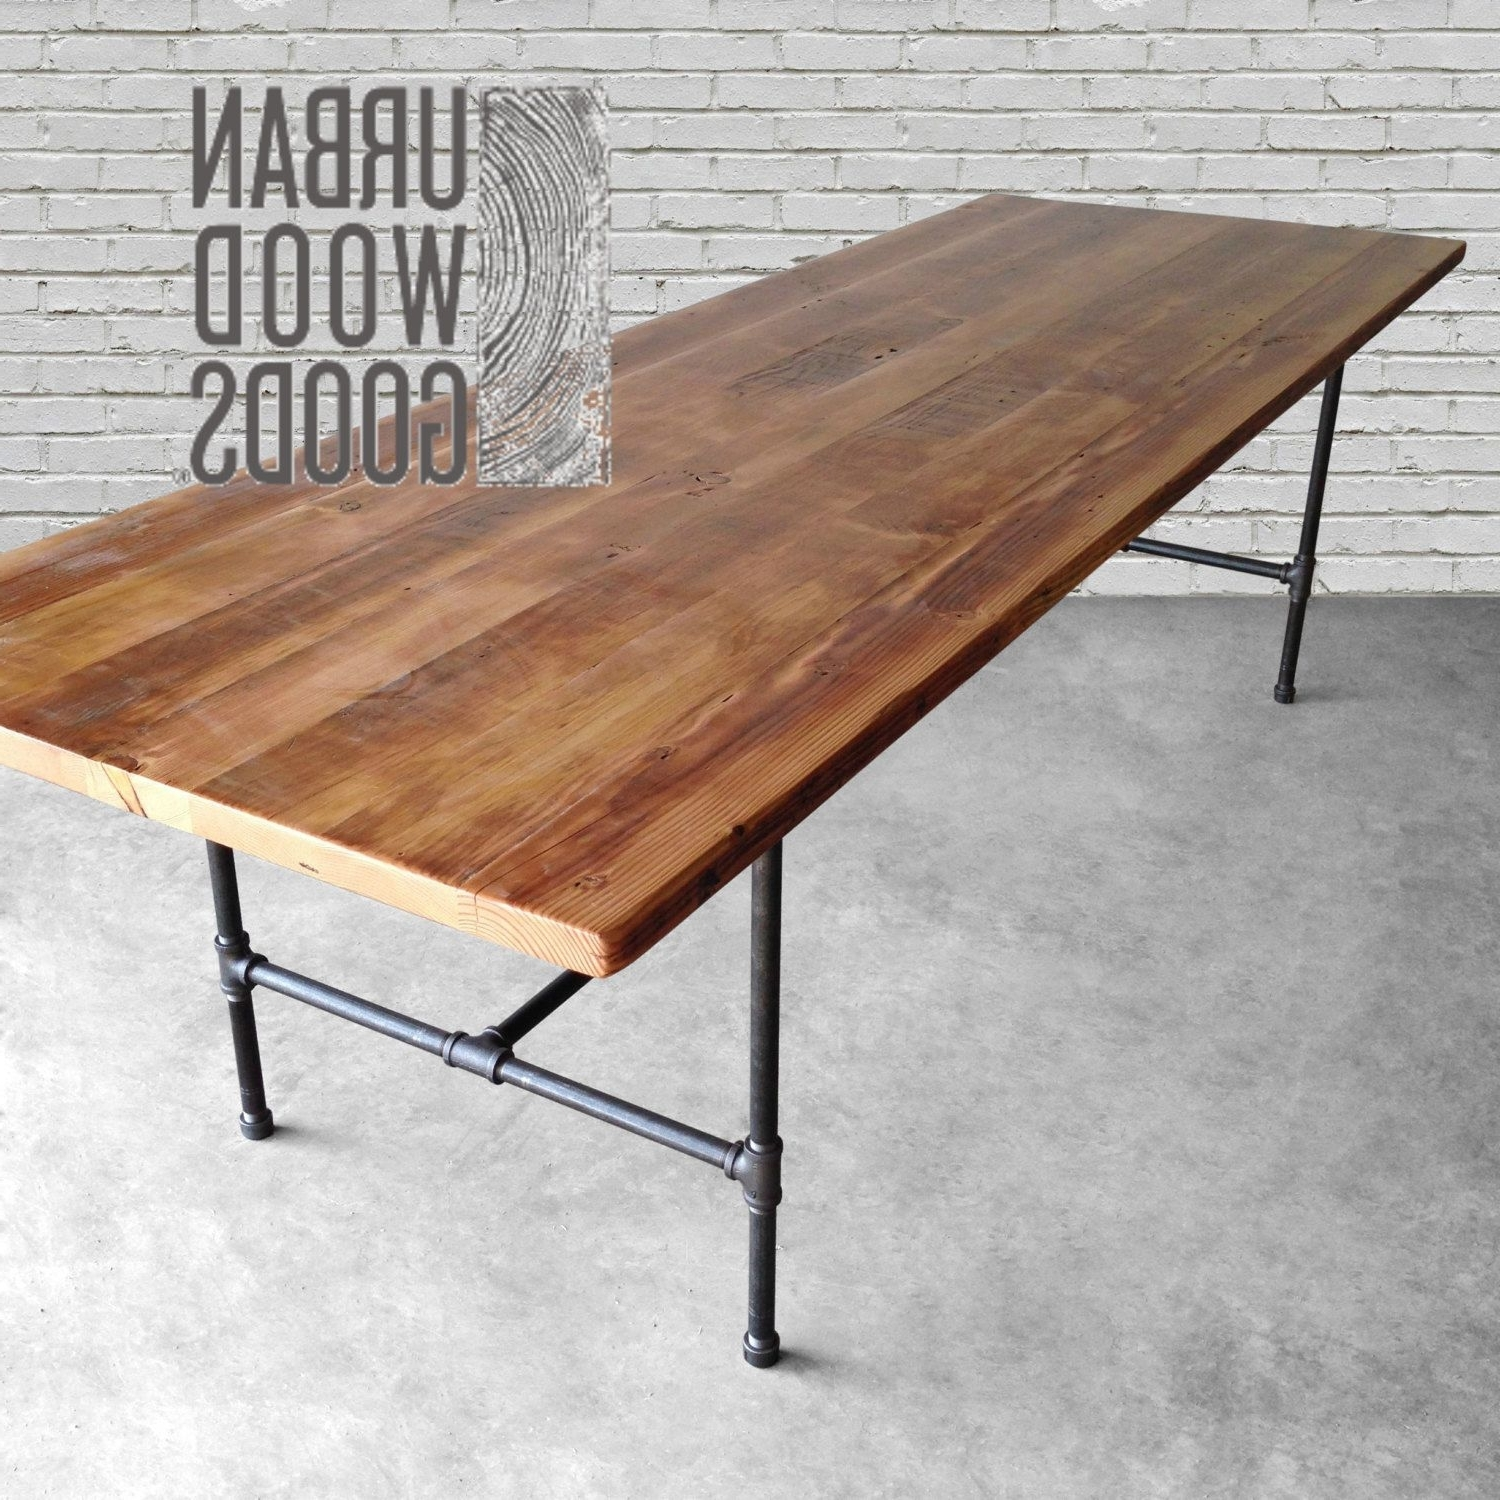 Solid Wood Dining Table With Reclaimed Wood Top And Iron Pipe Legs With Regard To Popular Dining Tables With Metal Legs Wood Top (View 20 of 25)